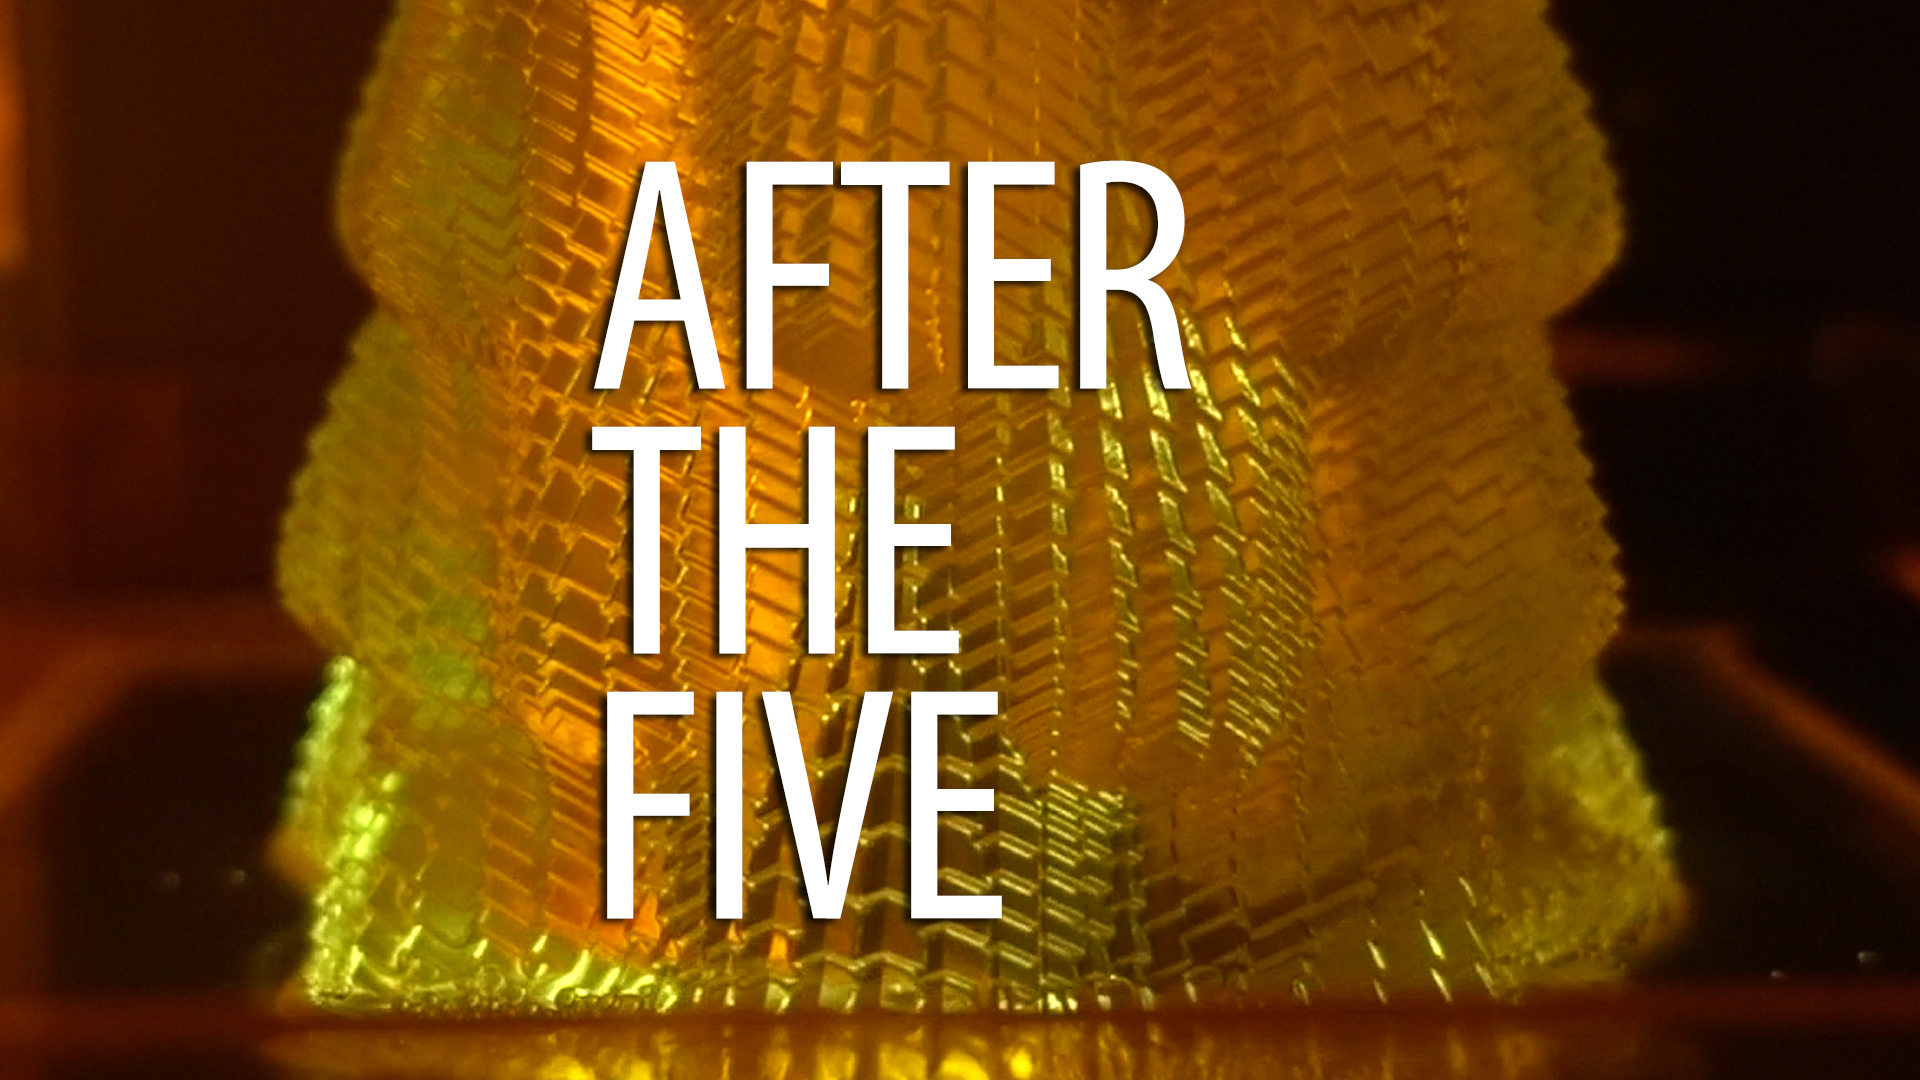 AFTER THE FIVE – Cuboid Vase